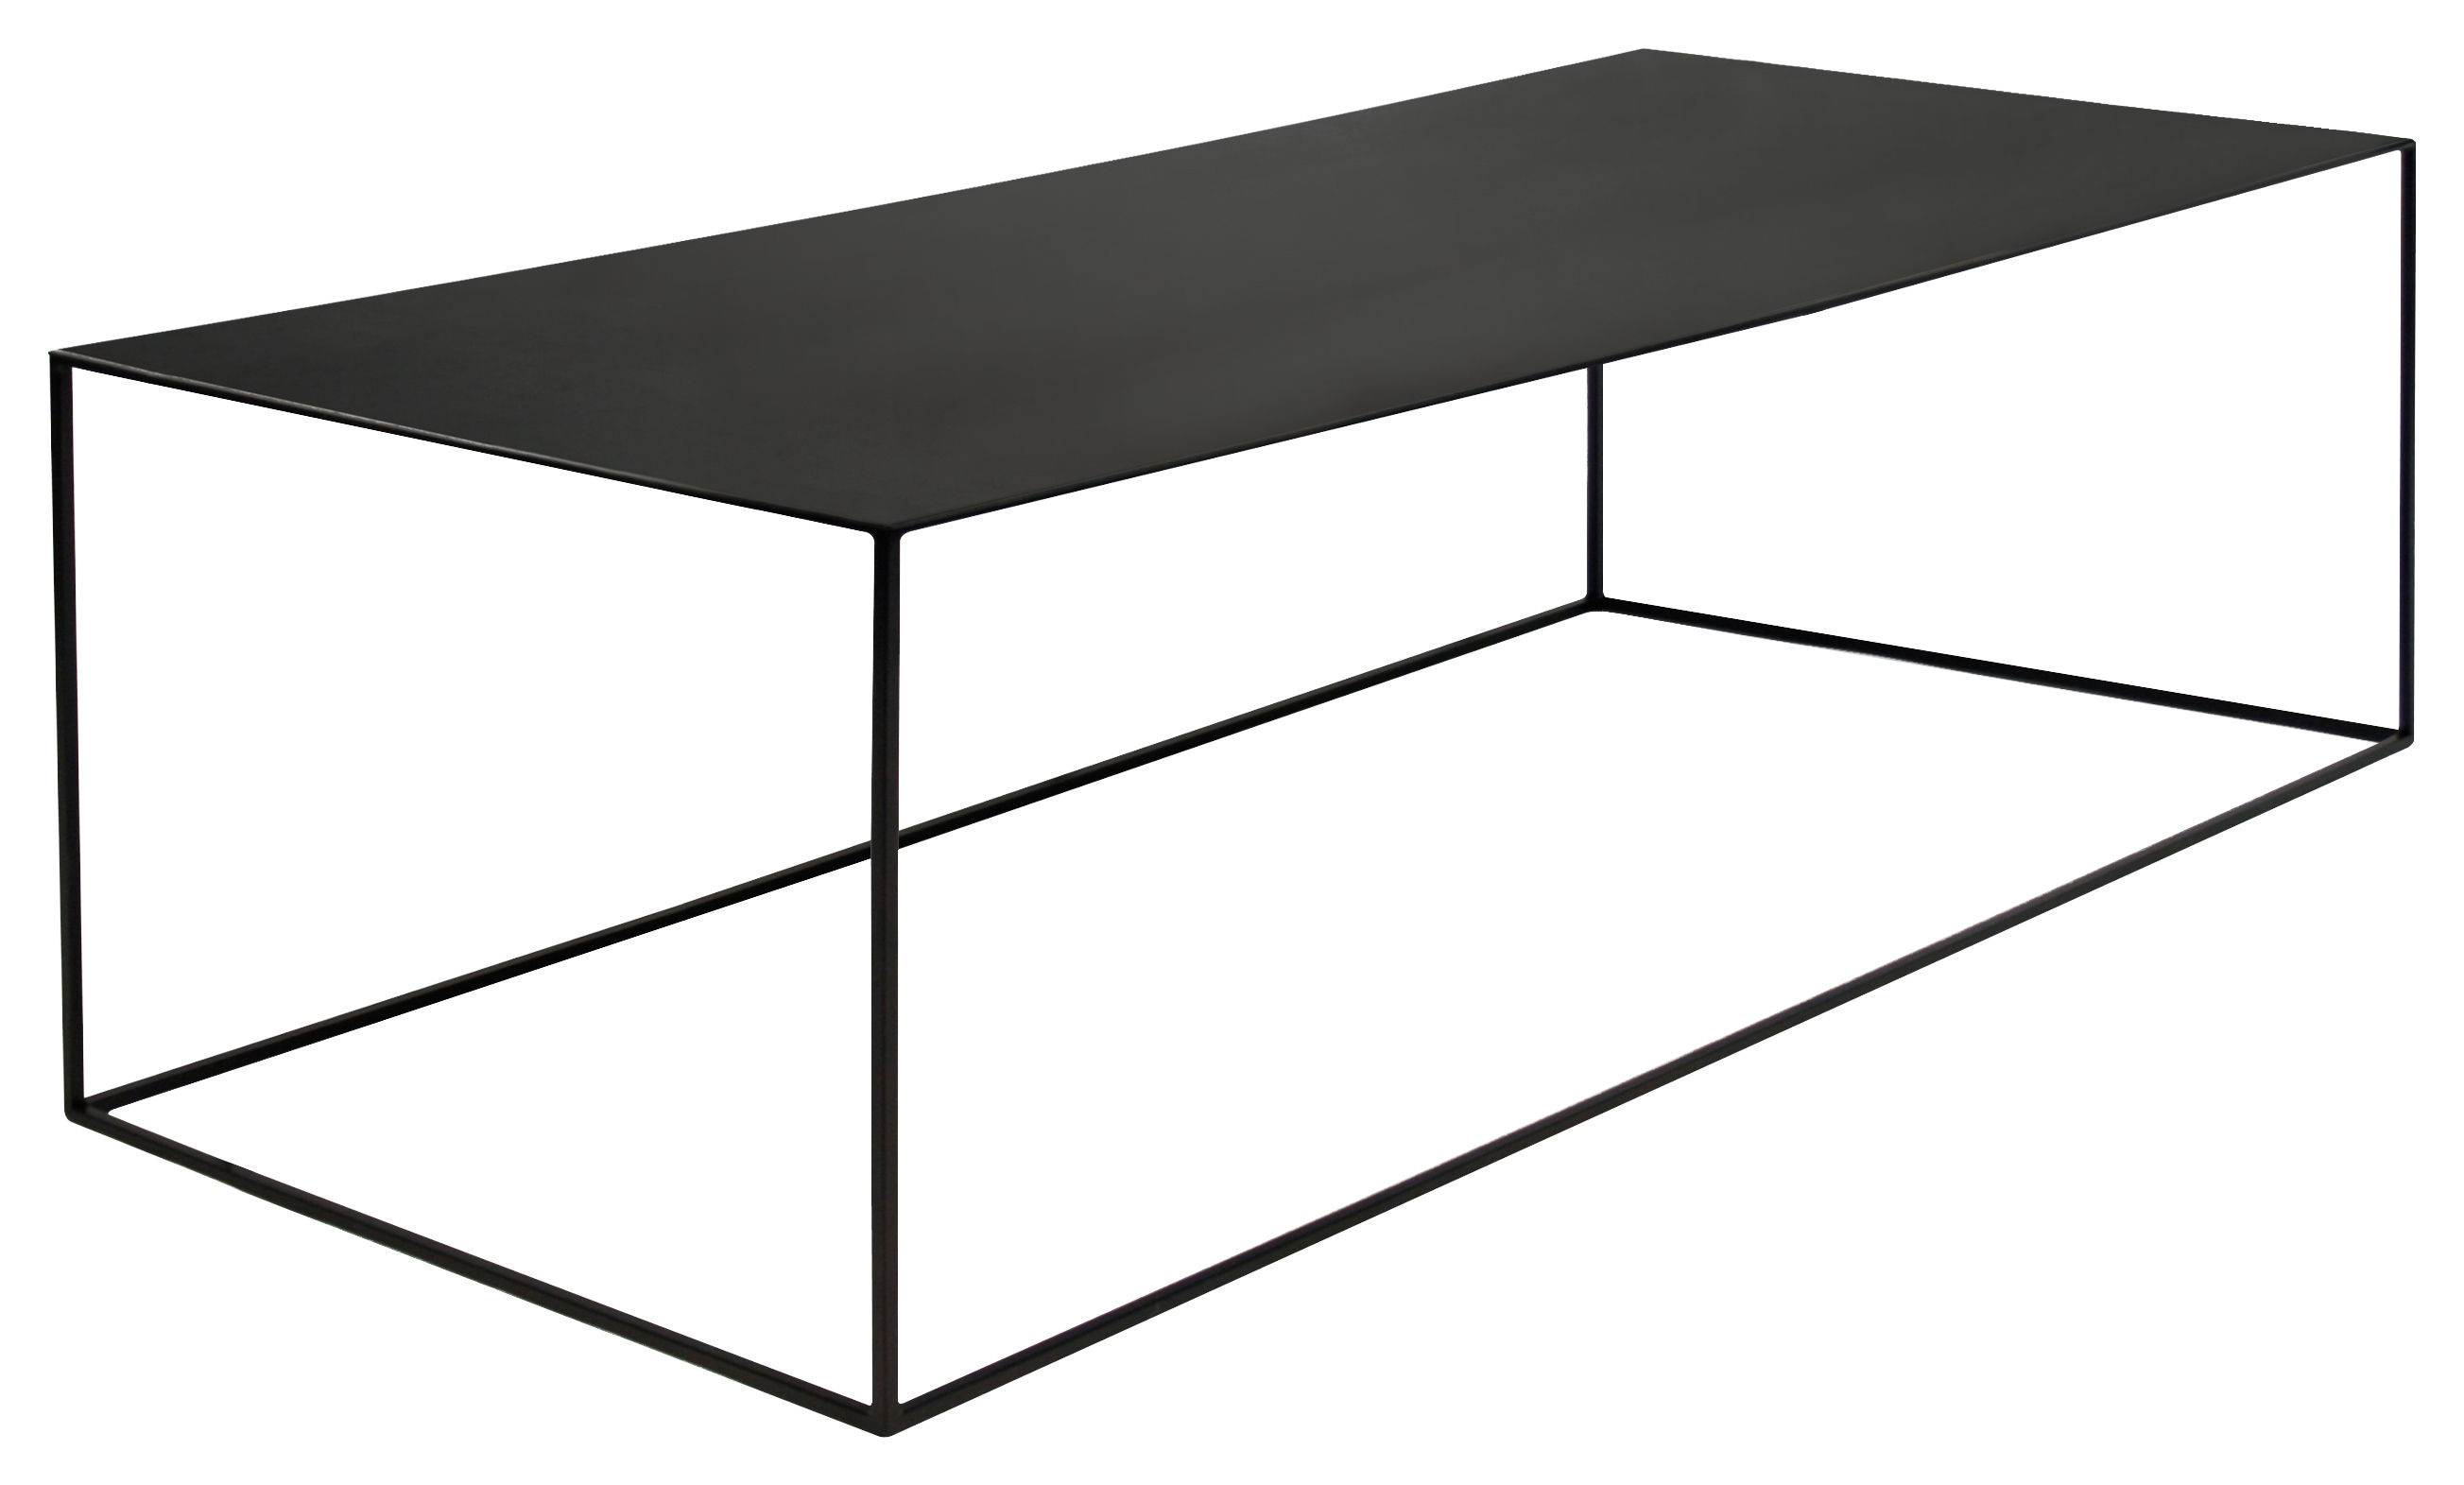 table basse slim irony 124 x 62 x h 34 cm m tal noir pied noir cuivr zeus. Black Bedroom Furniture Sets. Home Design Ideas